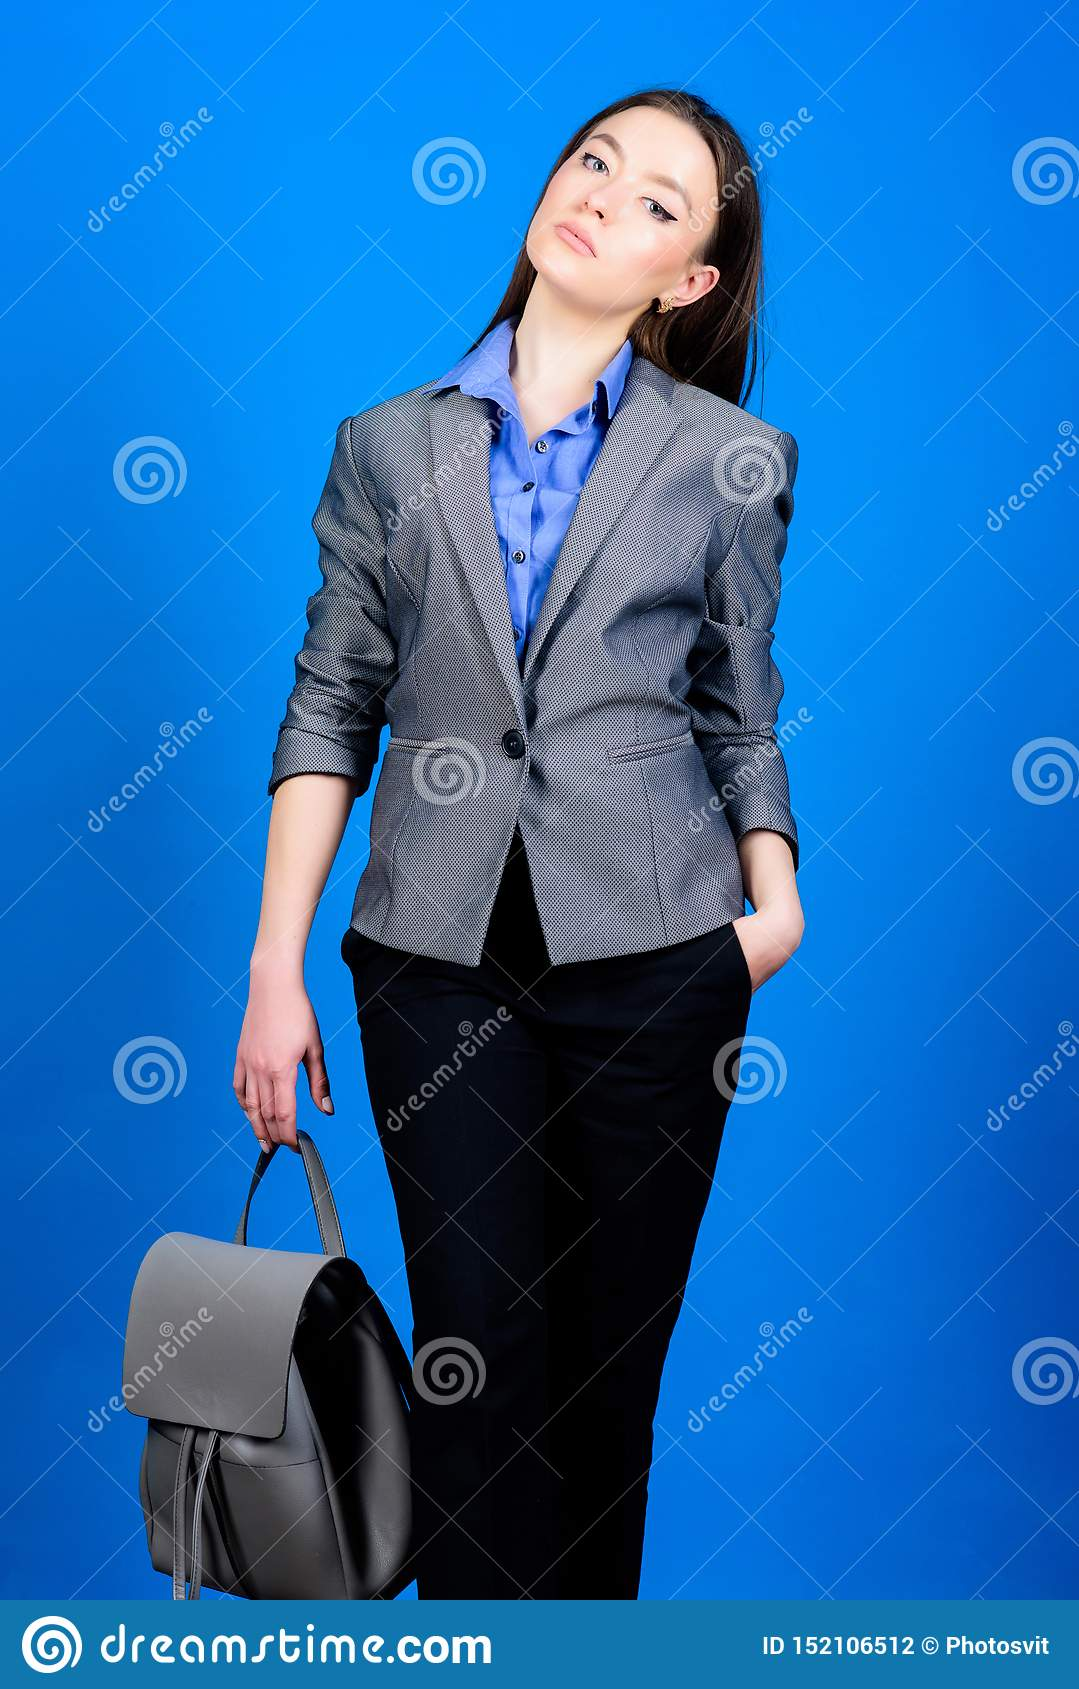 Formal style accessories. Backpack for daily modern urban life. Girl student in formal clothes. Backpack fashion trend